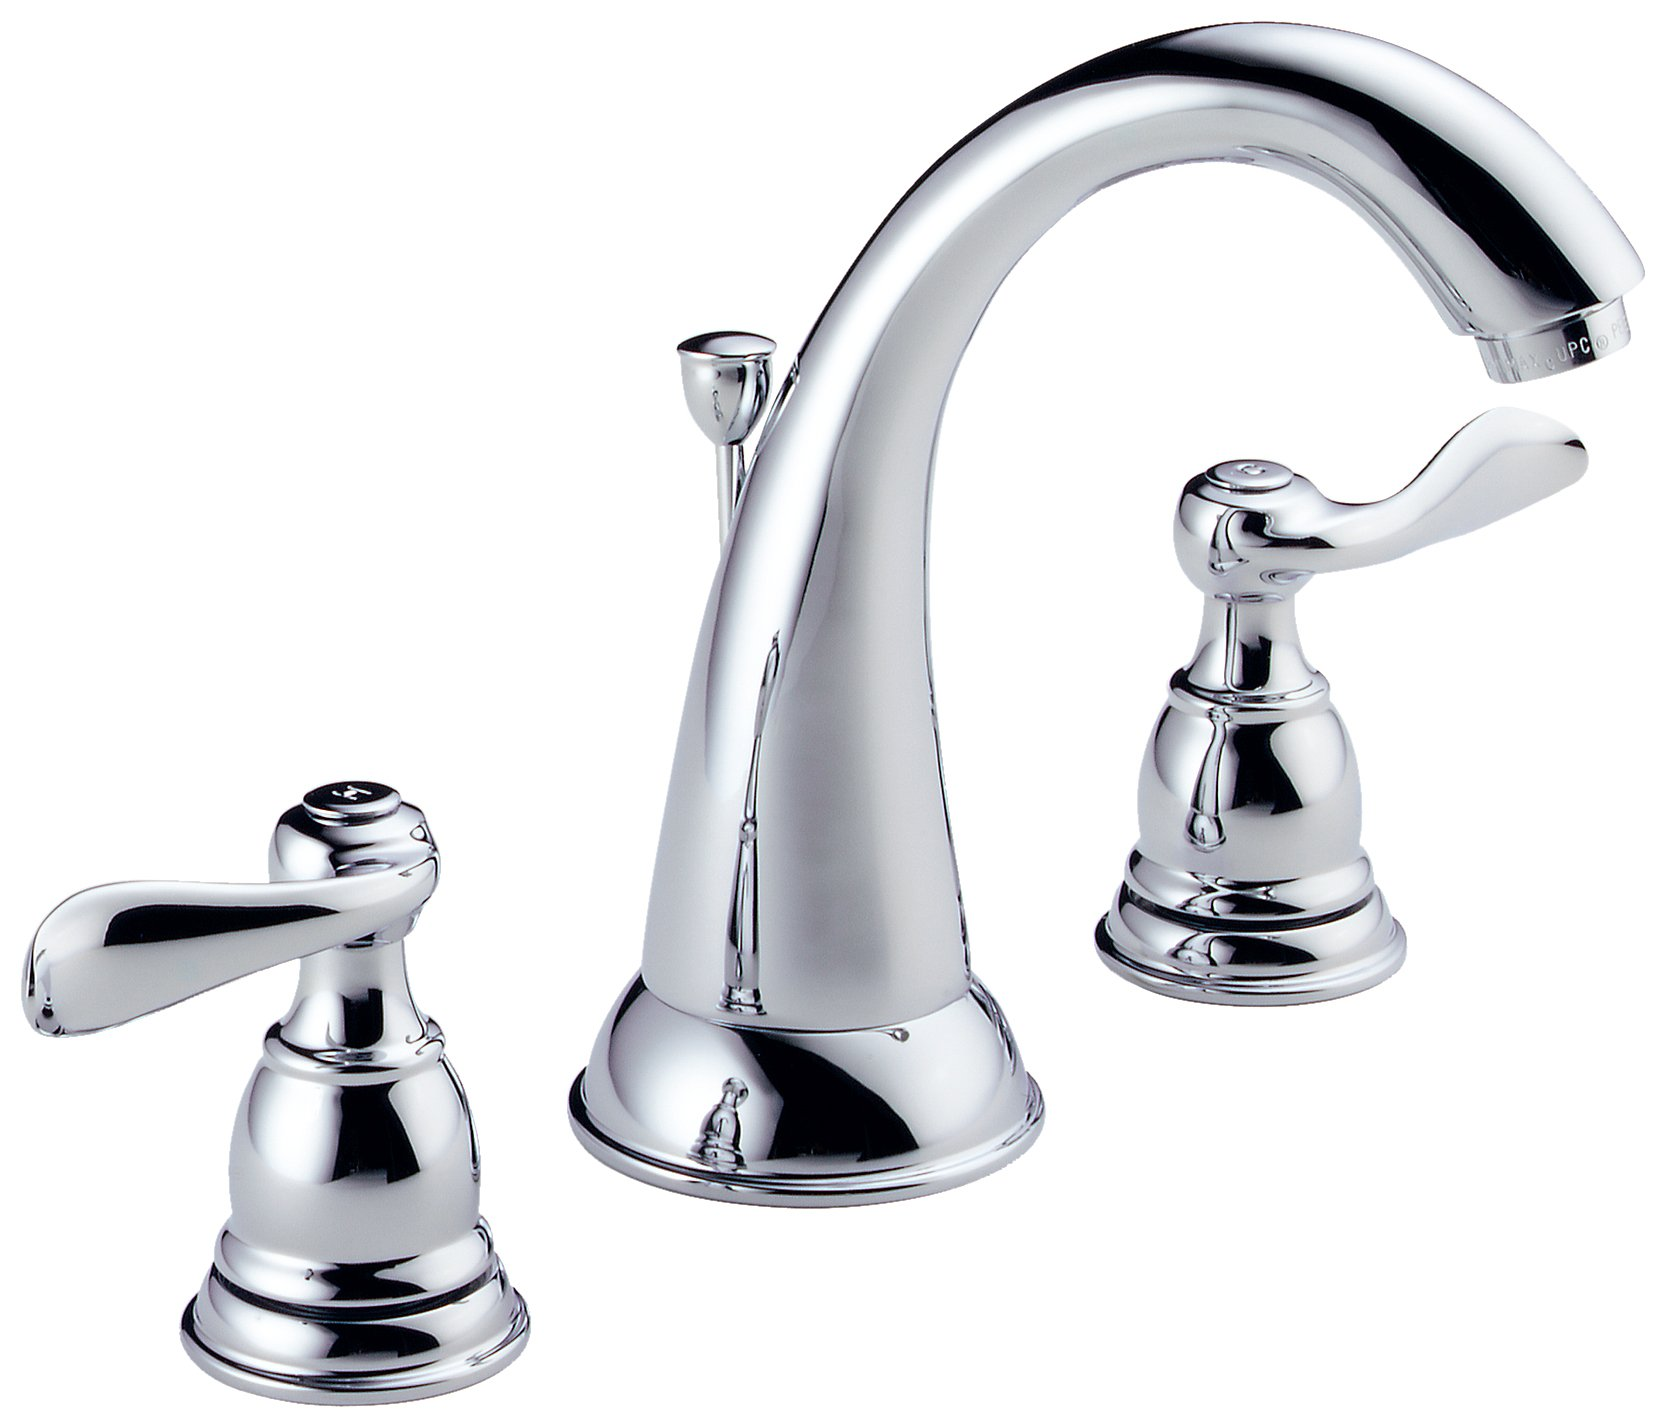 Delta Faucet Windemere 2-Handle Widespread Bathroom Faucet with Metal Drain Assembly, Chrome B3596LF by DELTA FAUCET